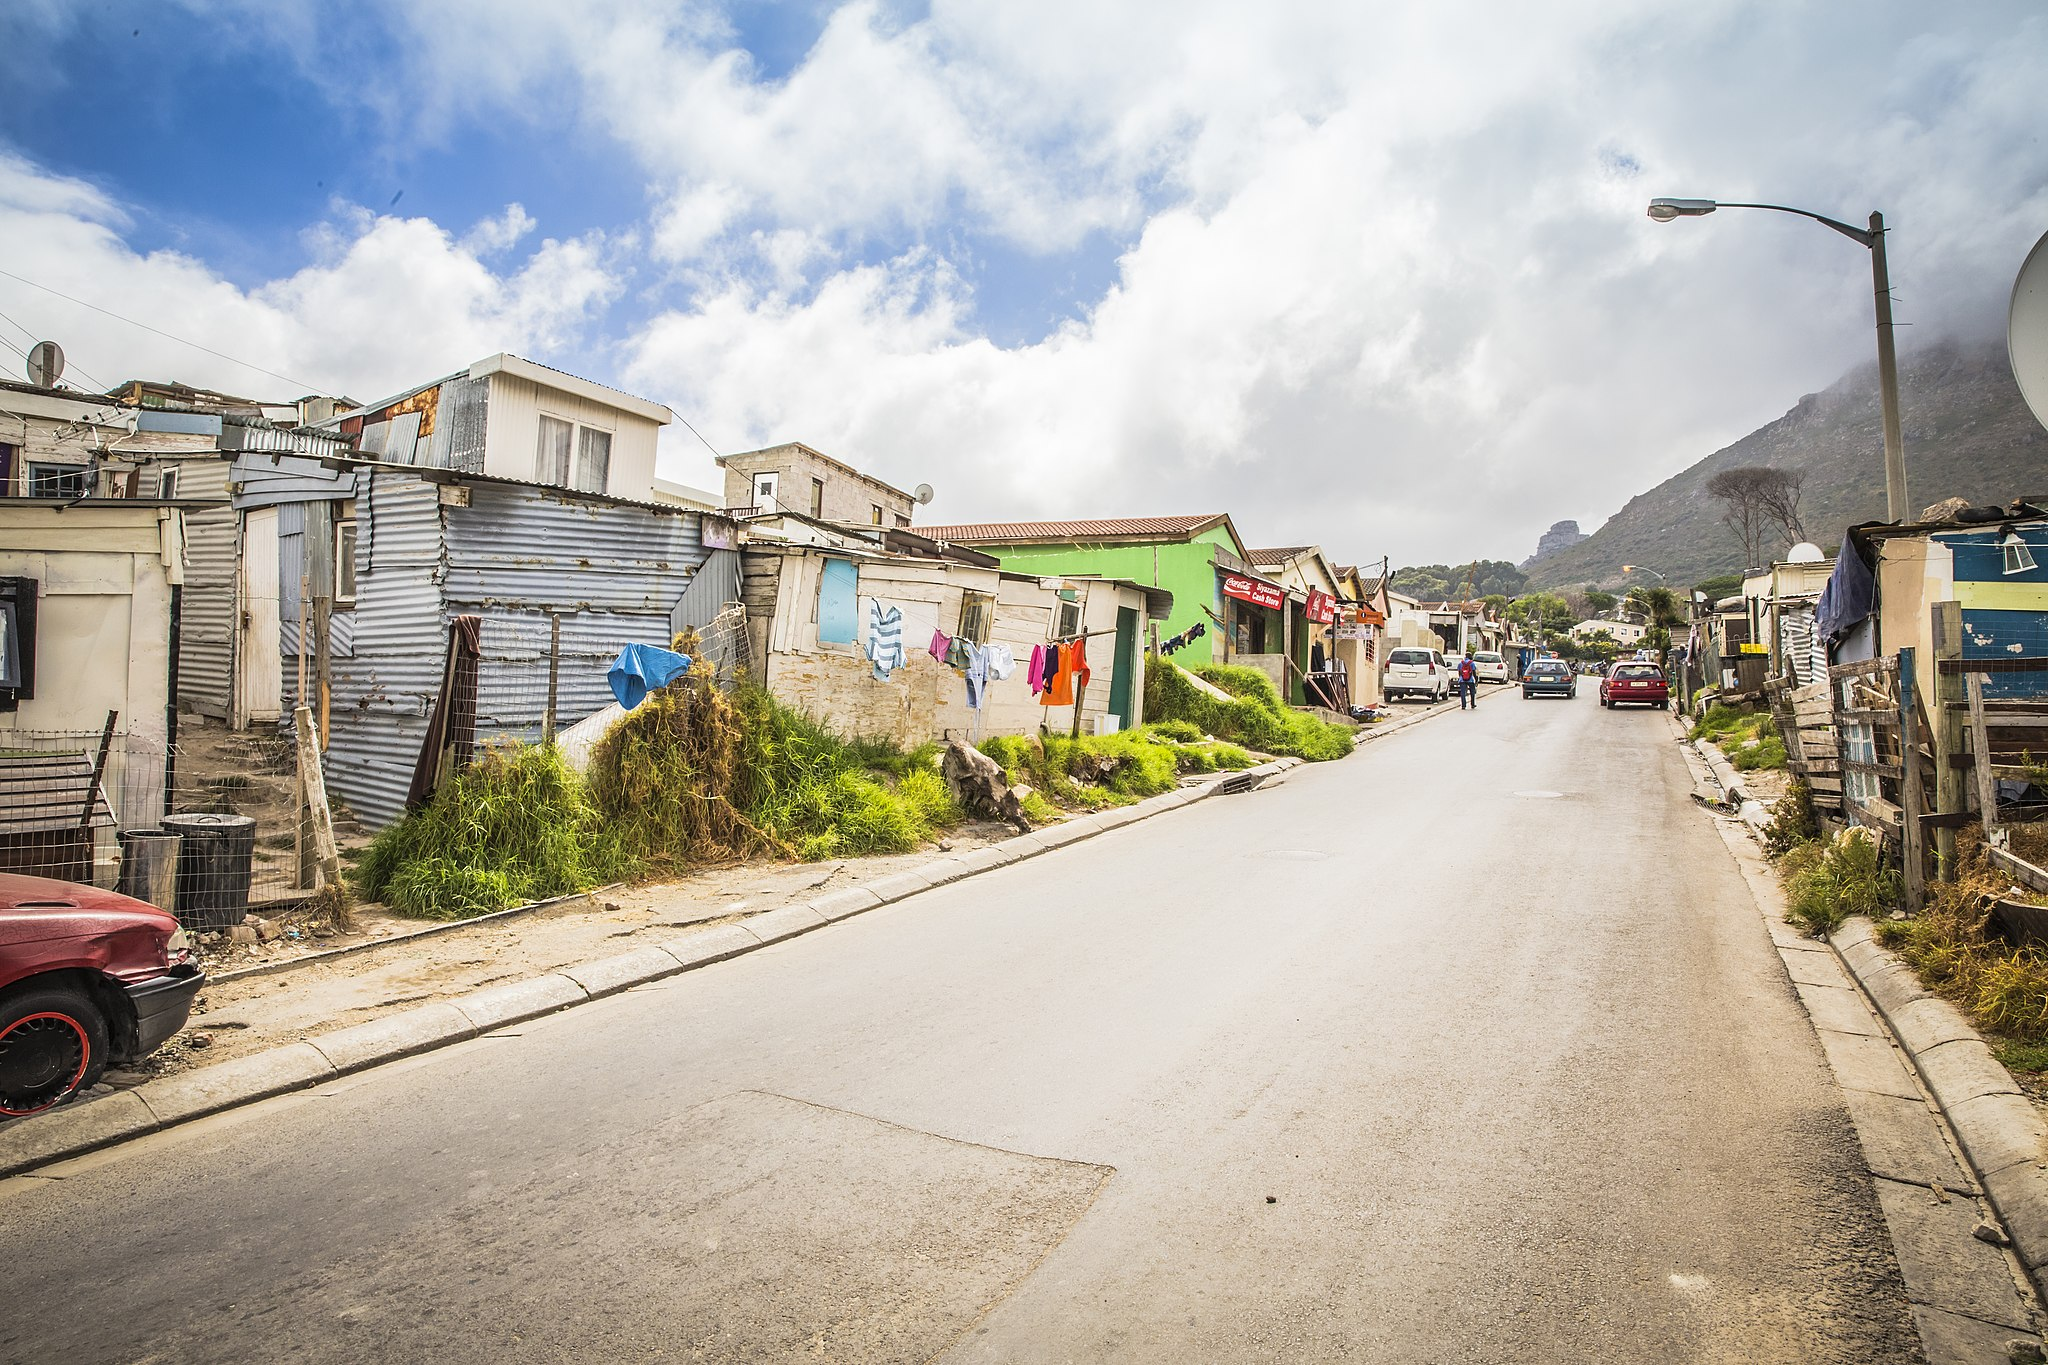 South Africa S Inequality Problem Needs New Thinking